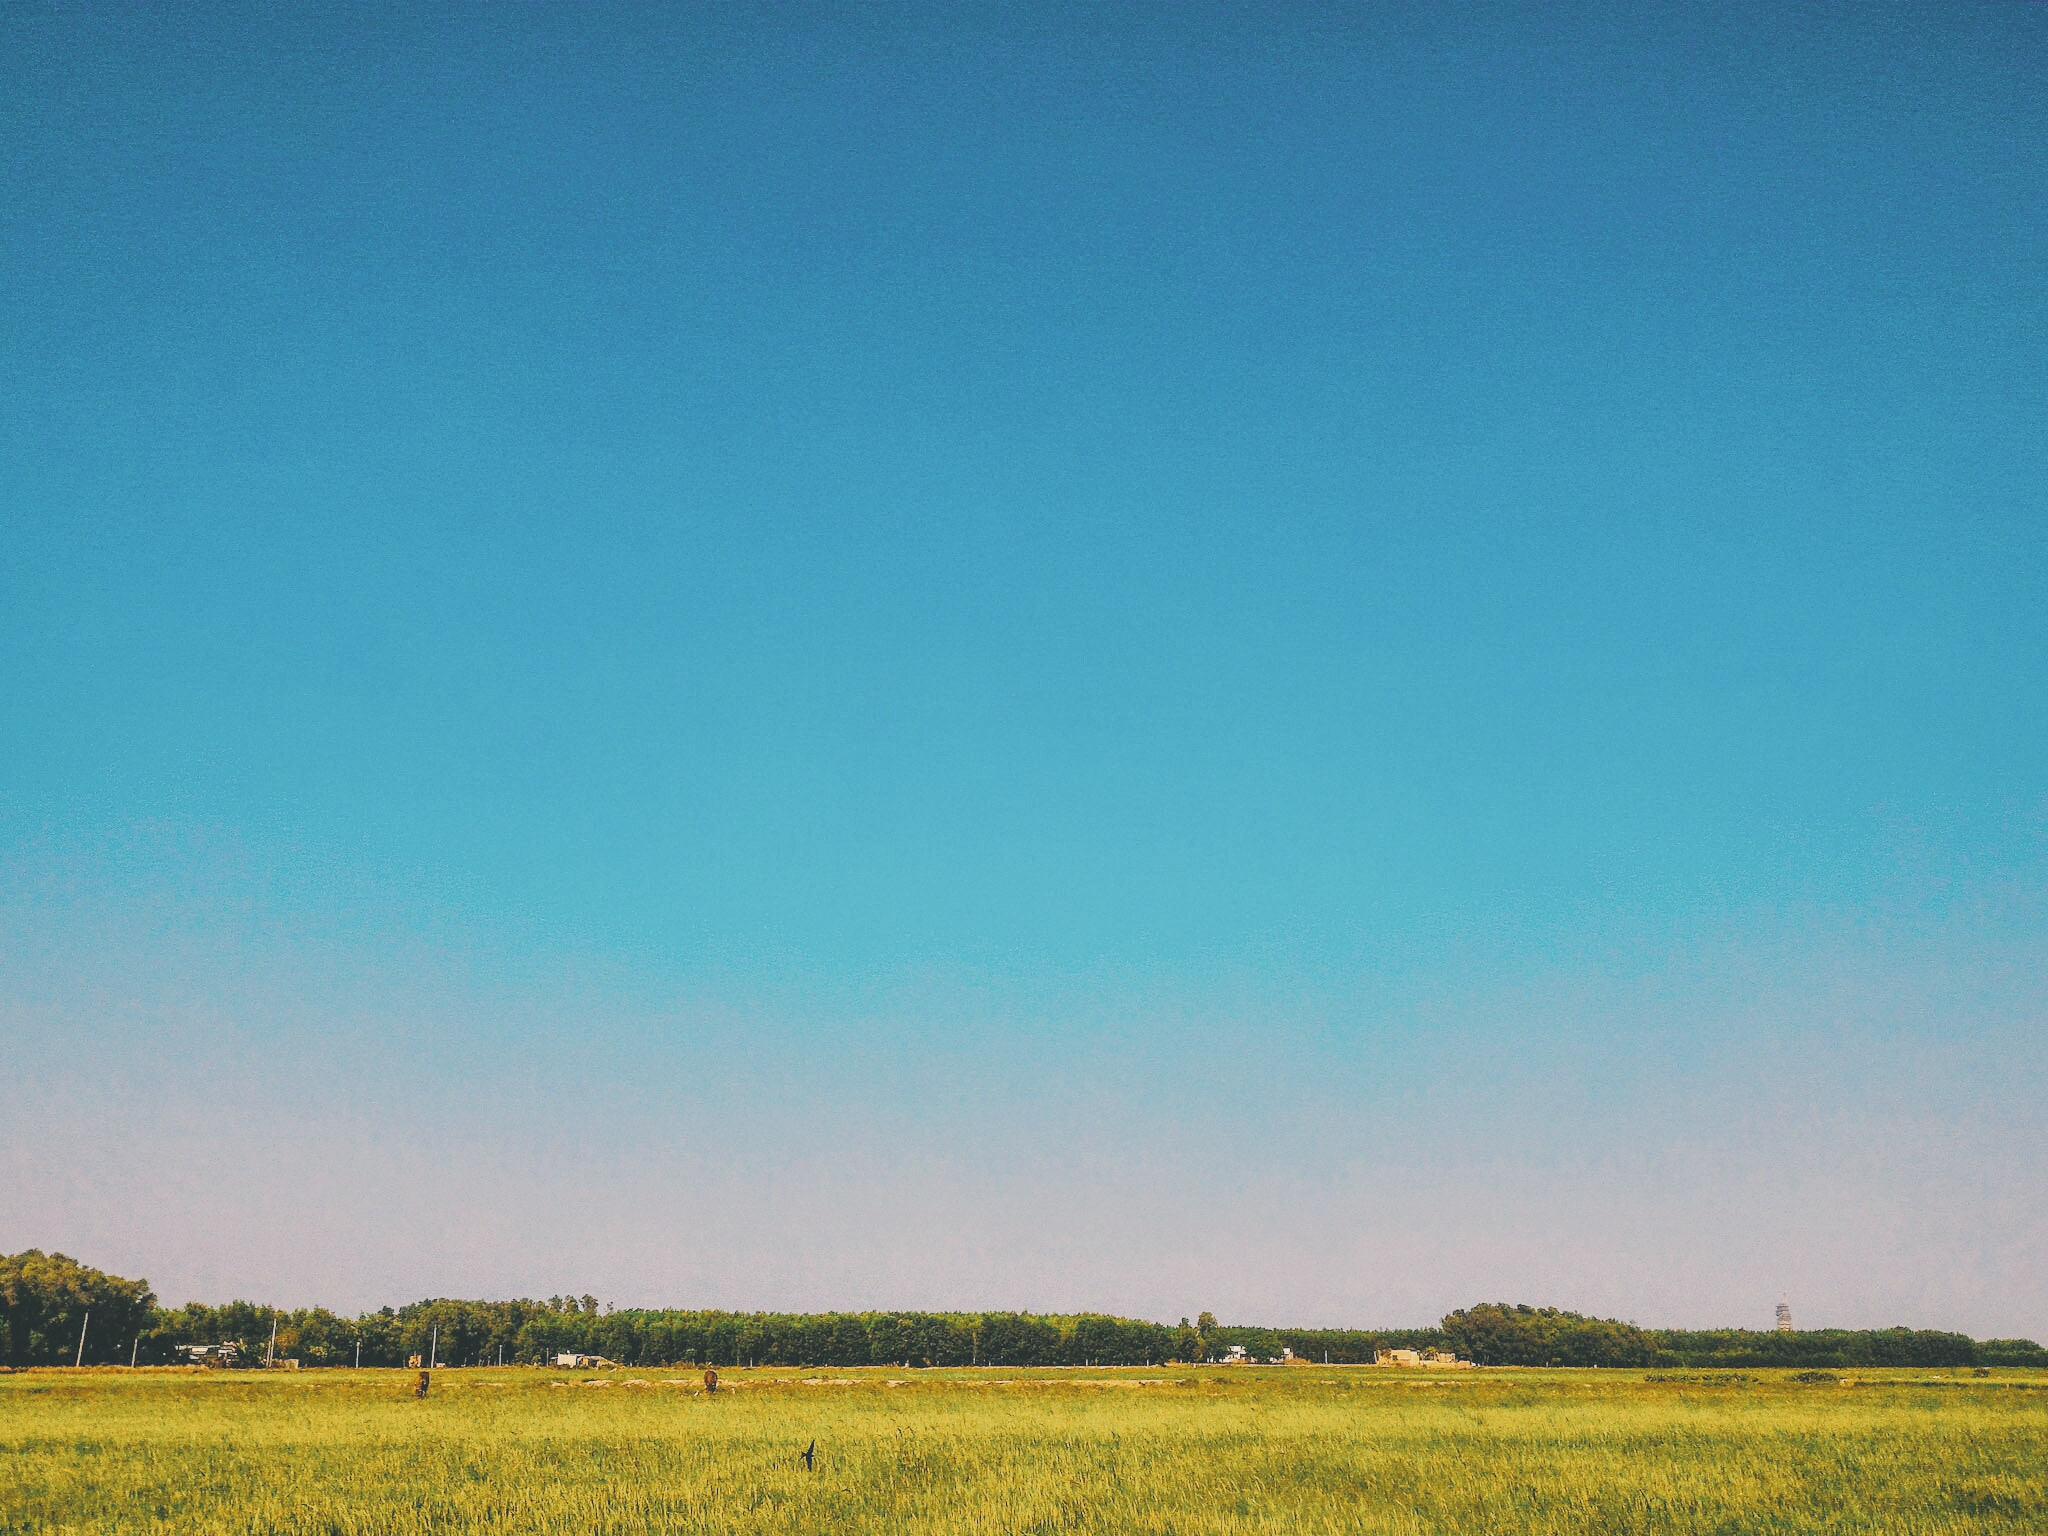 grass field under blue sky at daytime free stock photo